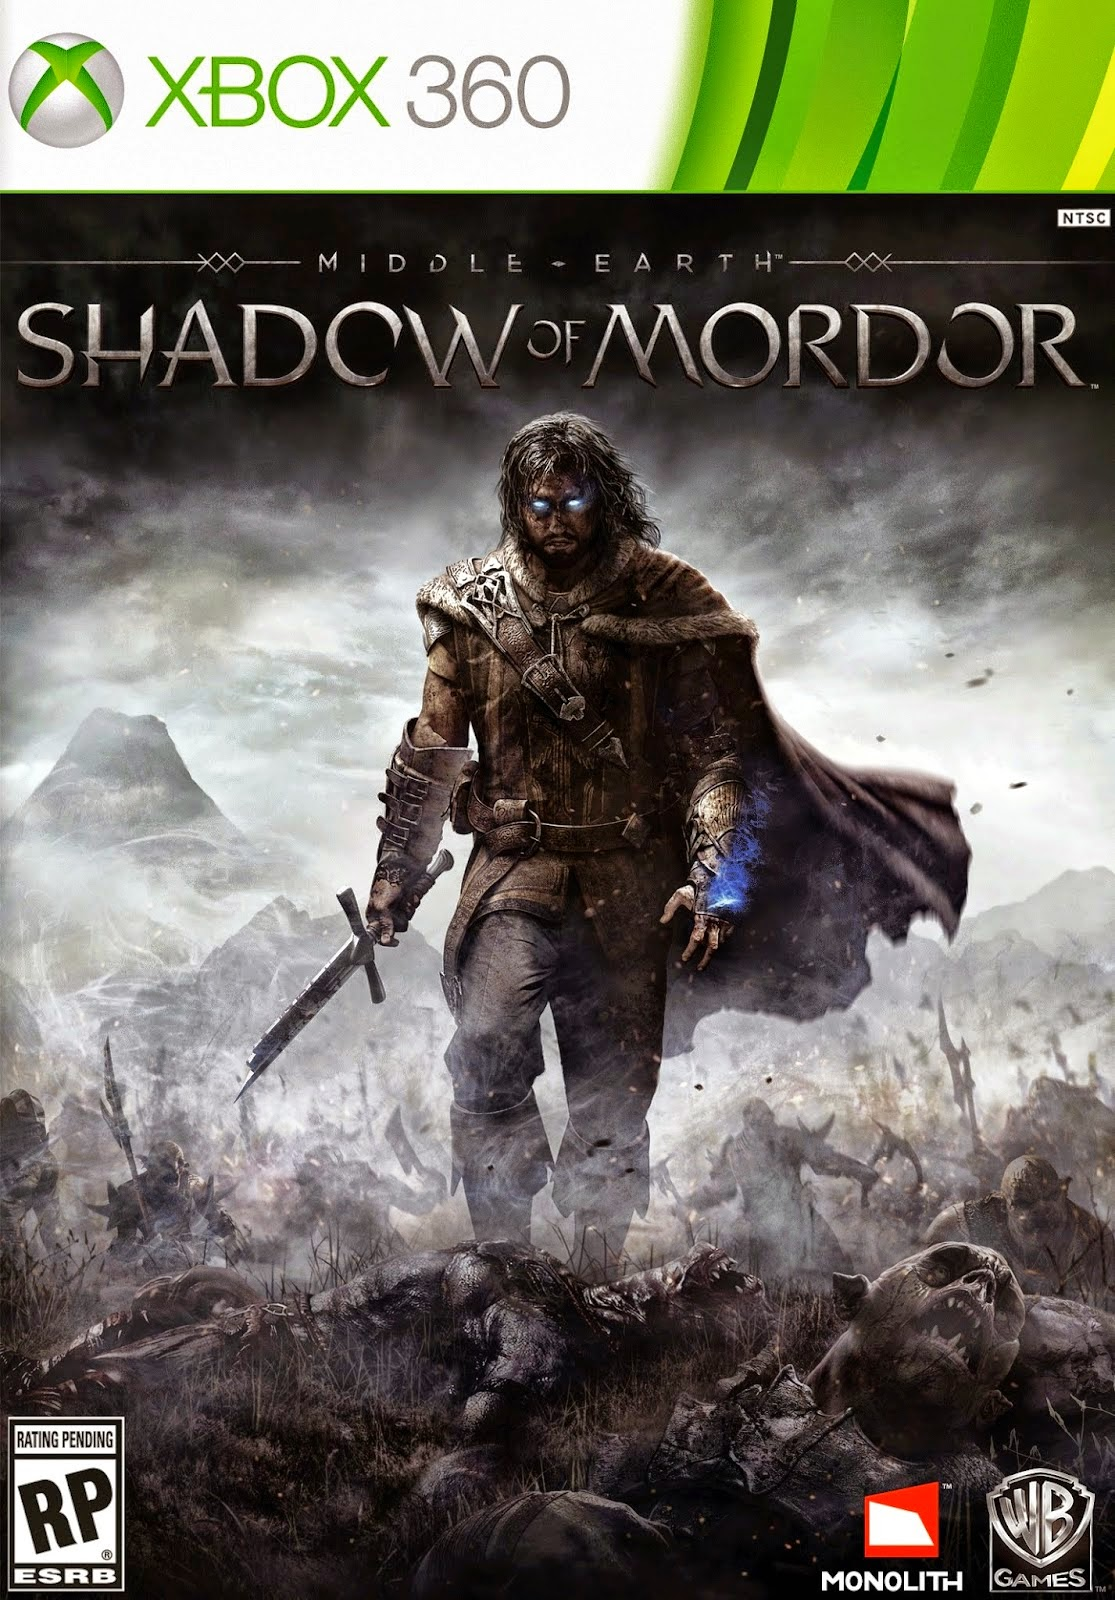 Middle Earth Shadow Of Mordor PS3 XBOX360 free download full version